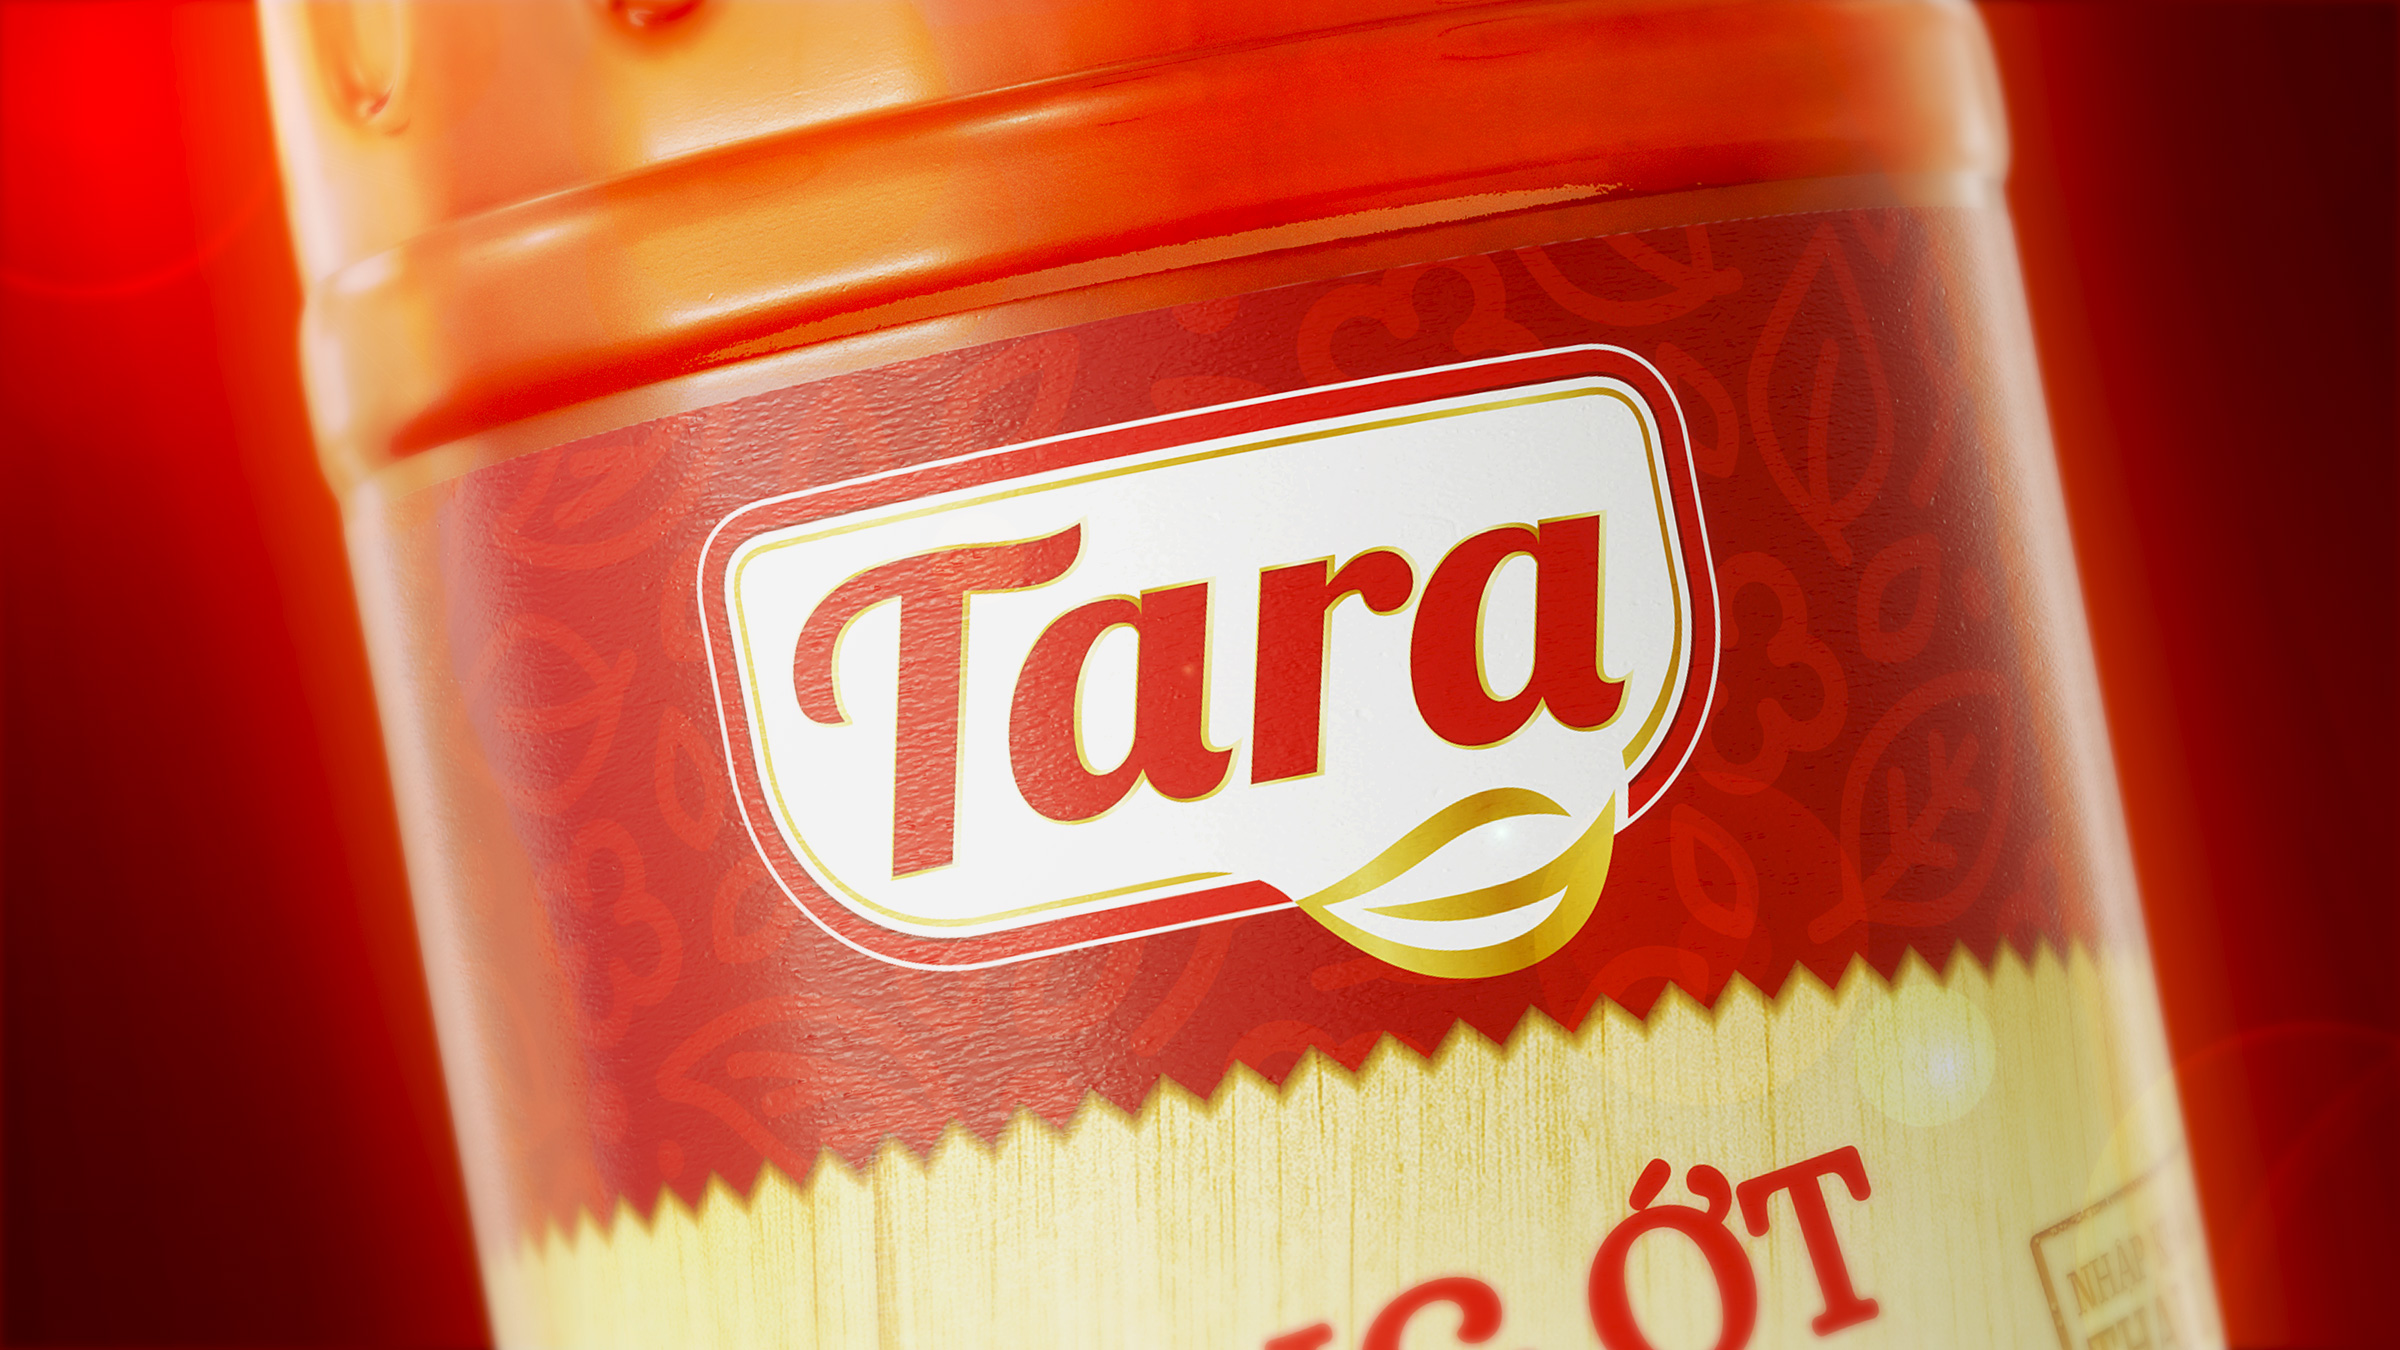 packaging design Tara Chili Sauce